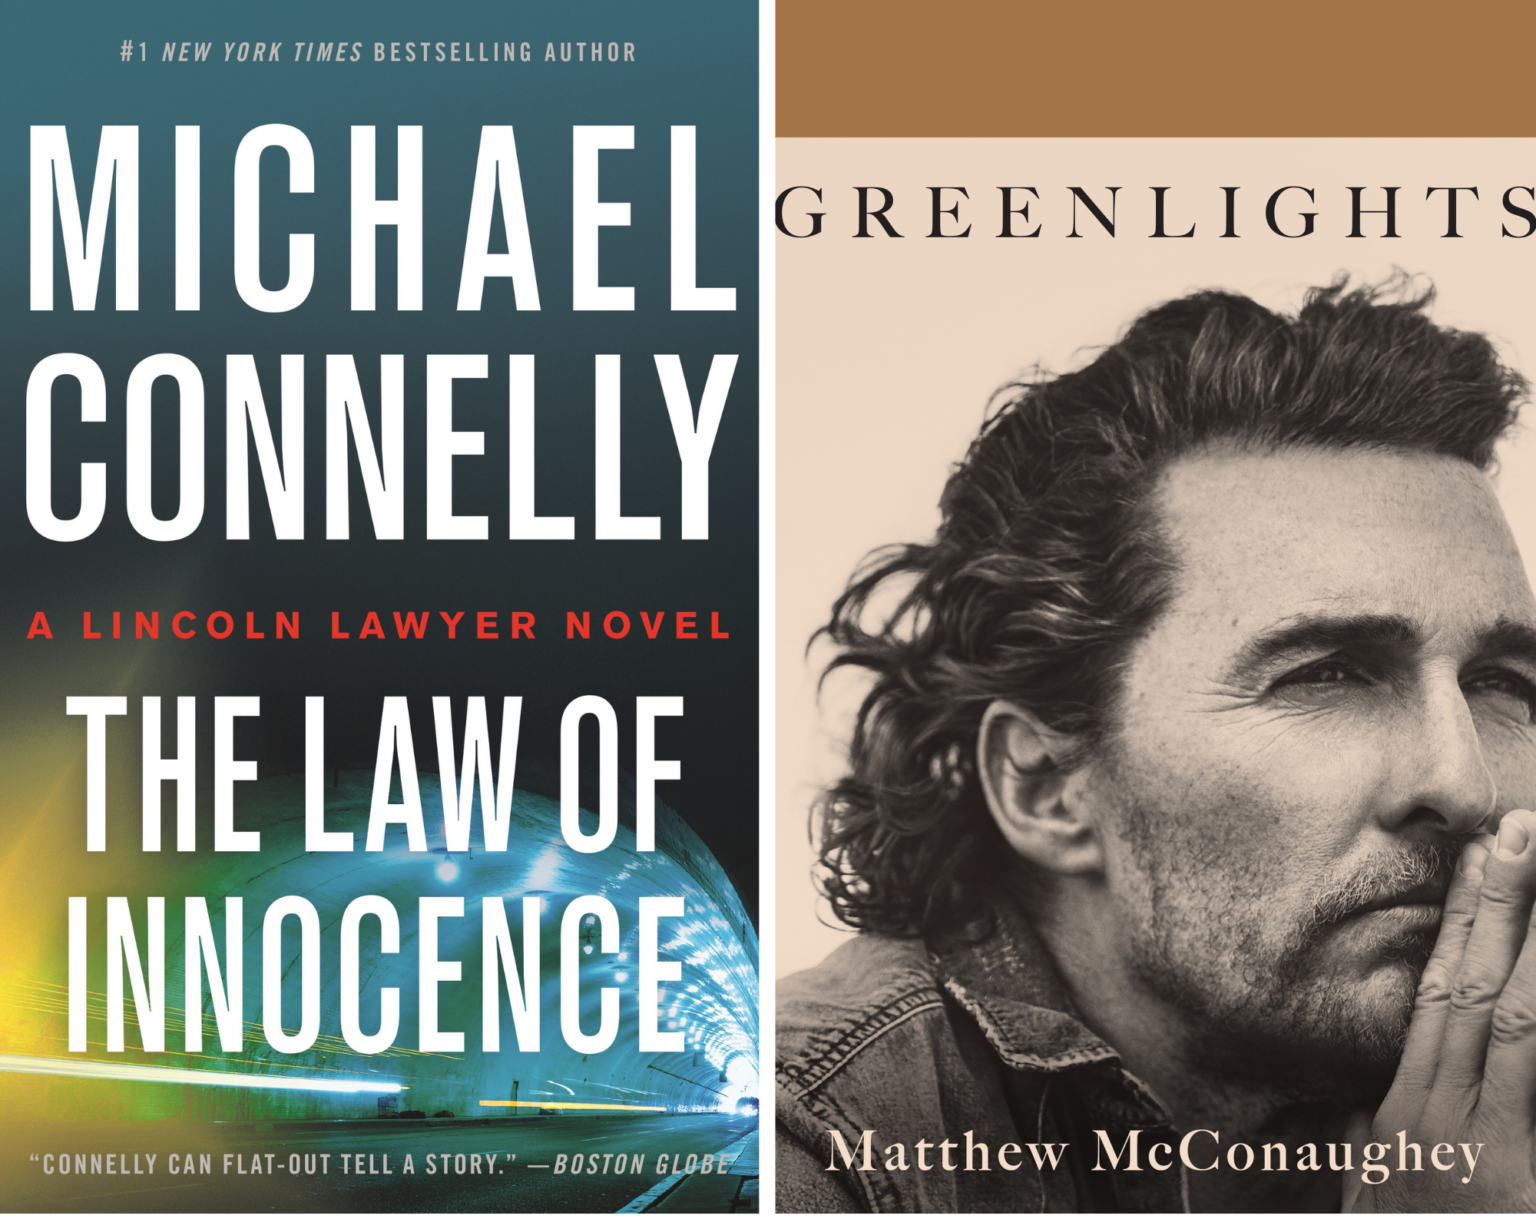 VIRTUAL BOOK: WRITERS BLOC TALK: WRITERS BLOC PRESENTS MICHAEL CONNELLY PRESENTS AND MATTHEW MCCONAUGHEY. OUR LINCOLN LAWYER IS BACK